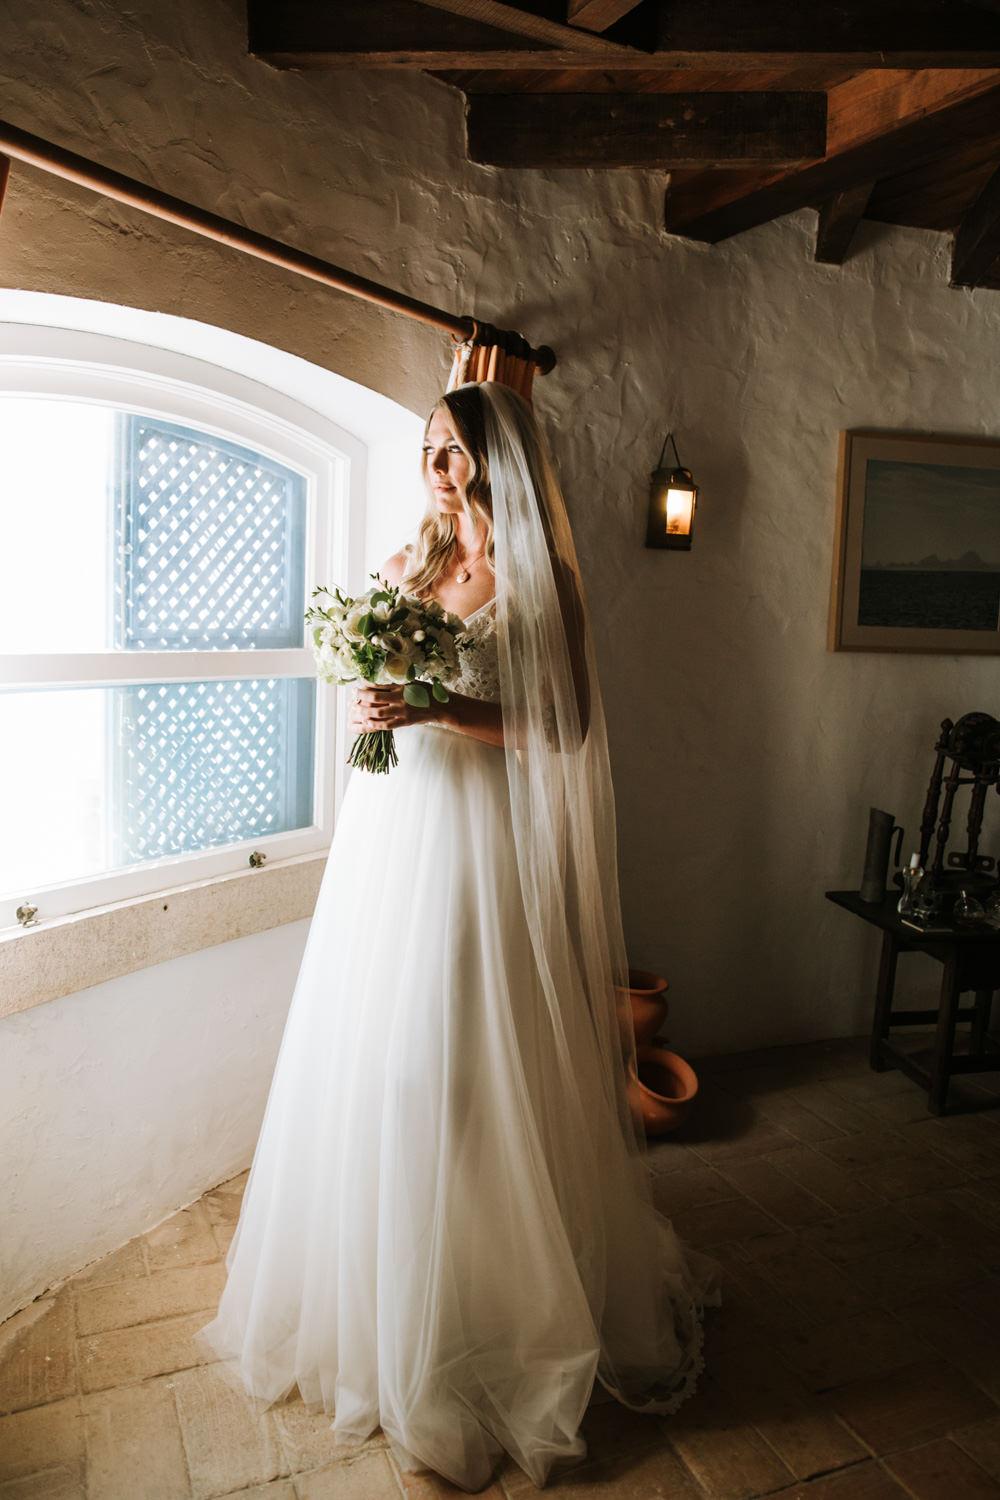 Bride Bridal Dress Gown Veil Victoria Kyriakides Tulle Portugal Destination Wedding The Lovers Imagery